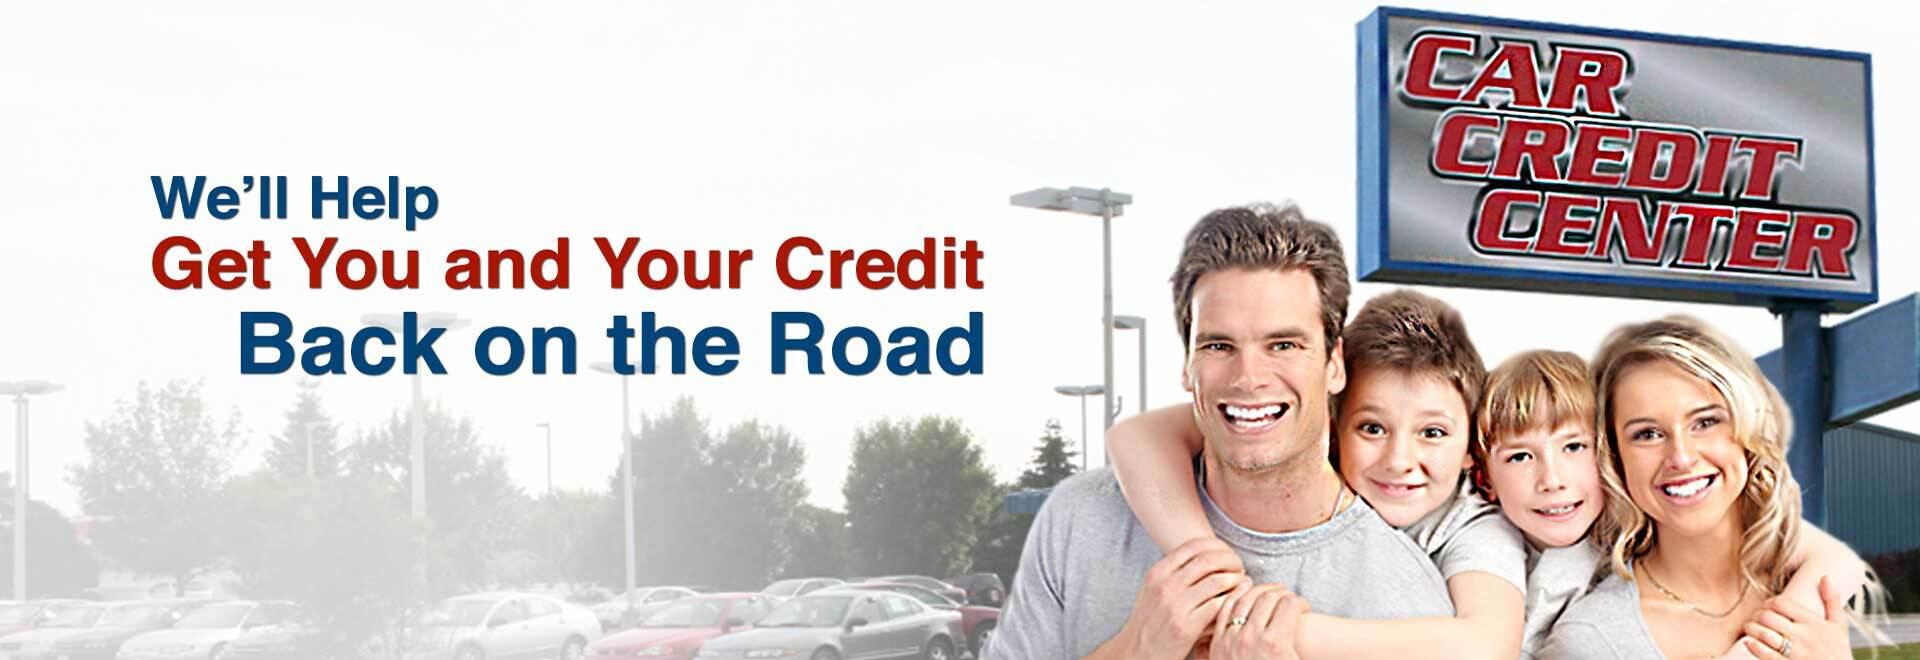 Get Your Credit Back On The Road